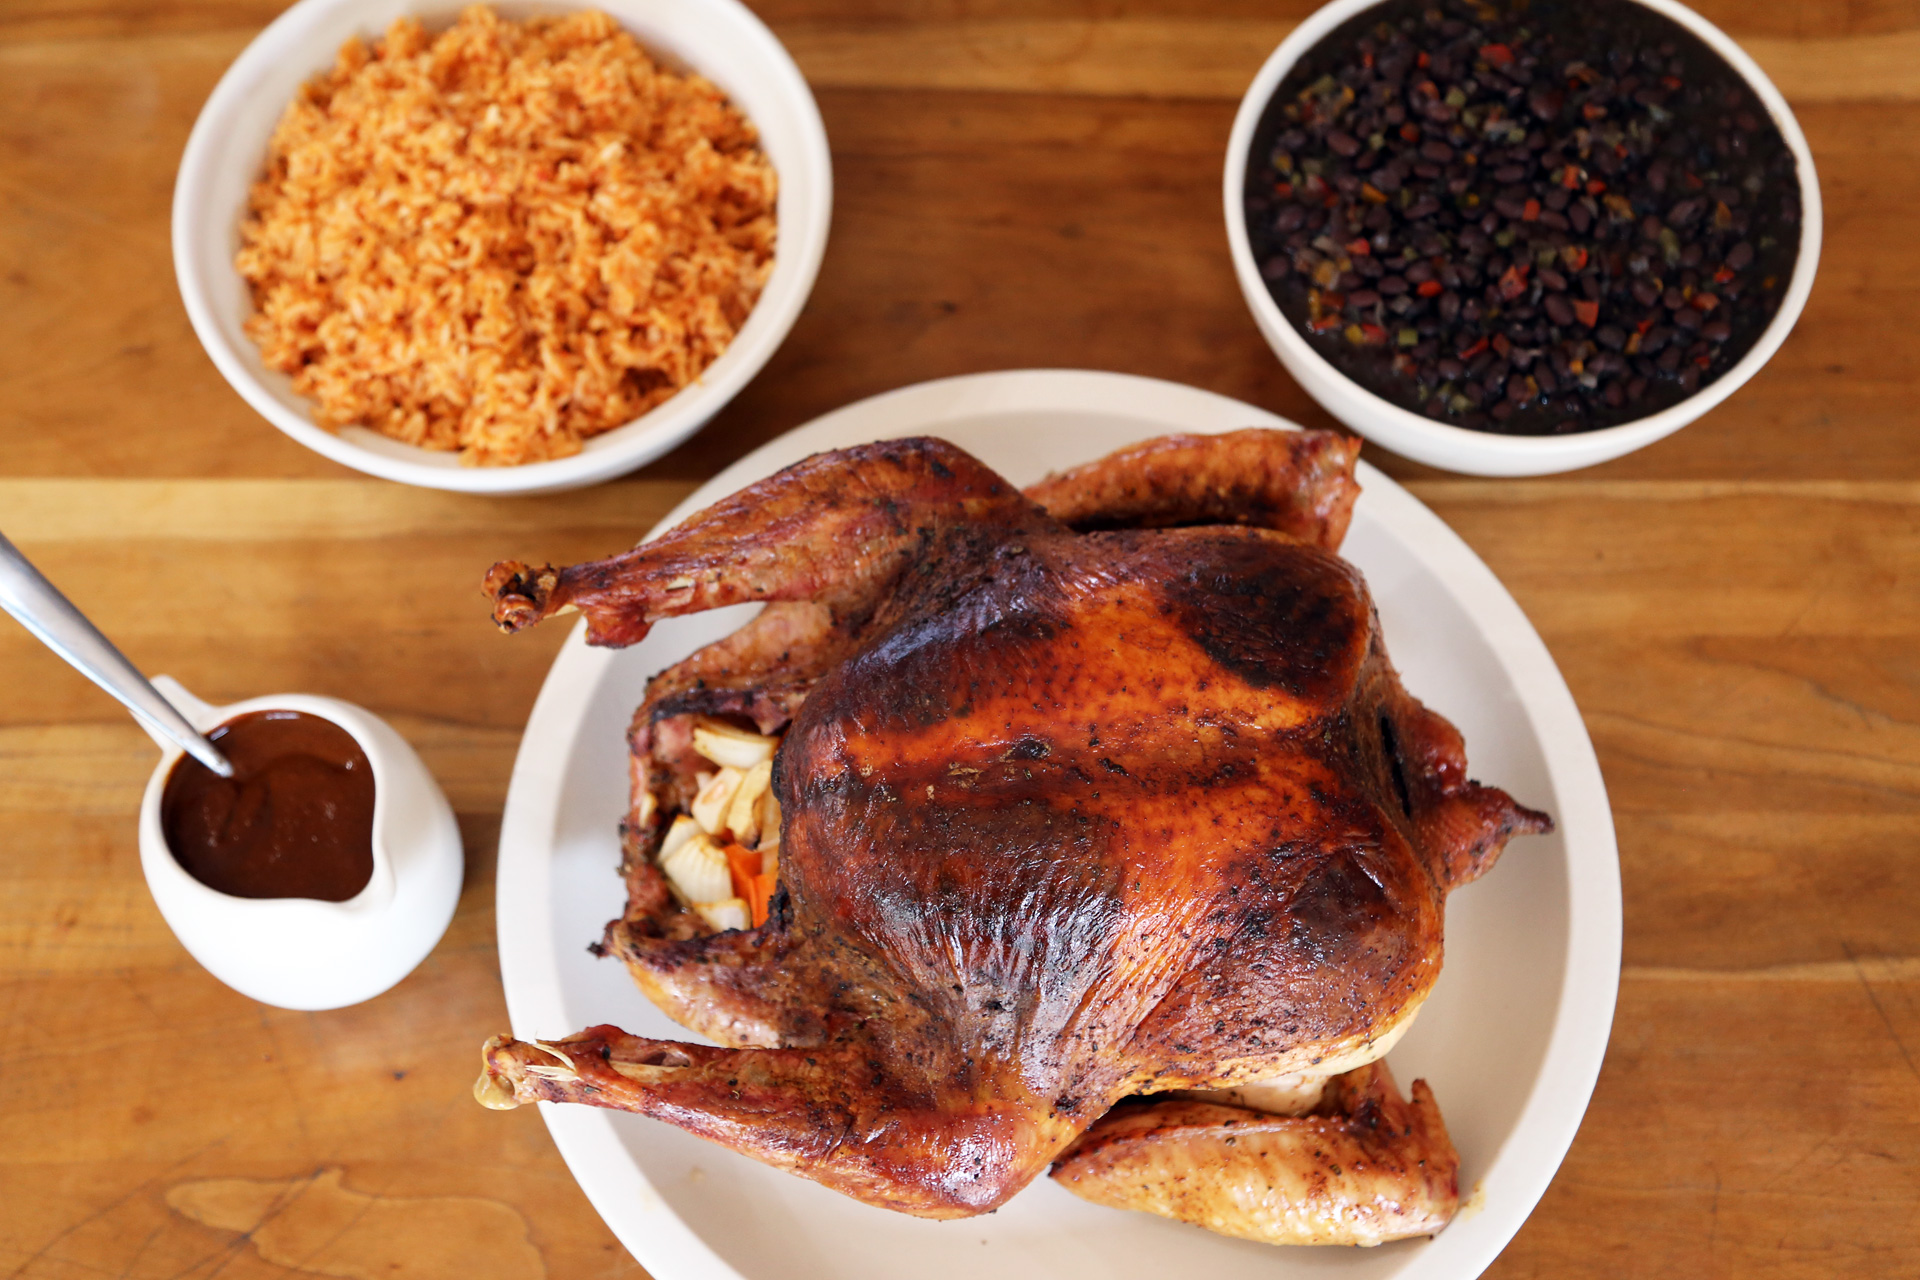 Spicy Mole Gravy can be served with Chile-Rubbed Turkey, Mexican Rice and Savory Black Beans